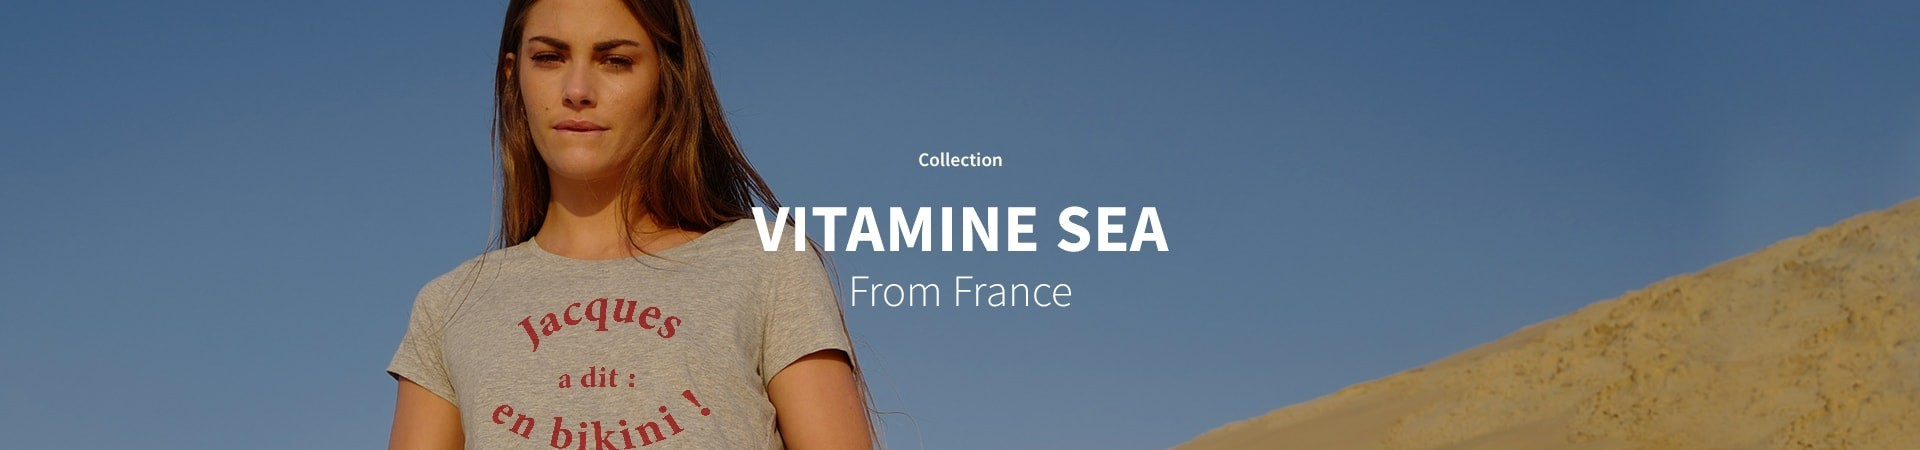 Vitamine Sea